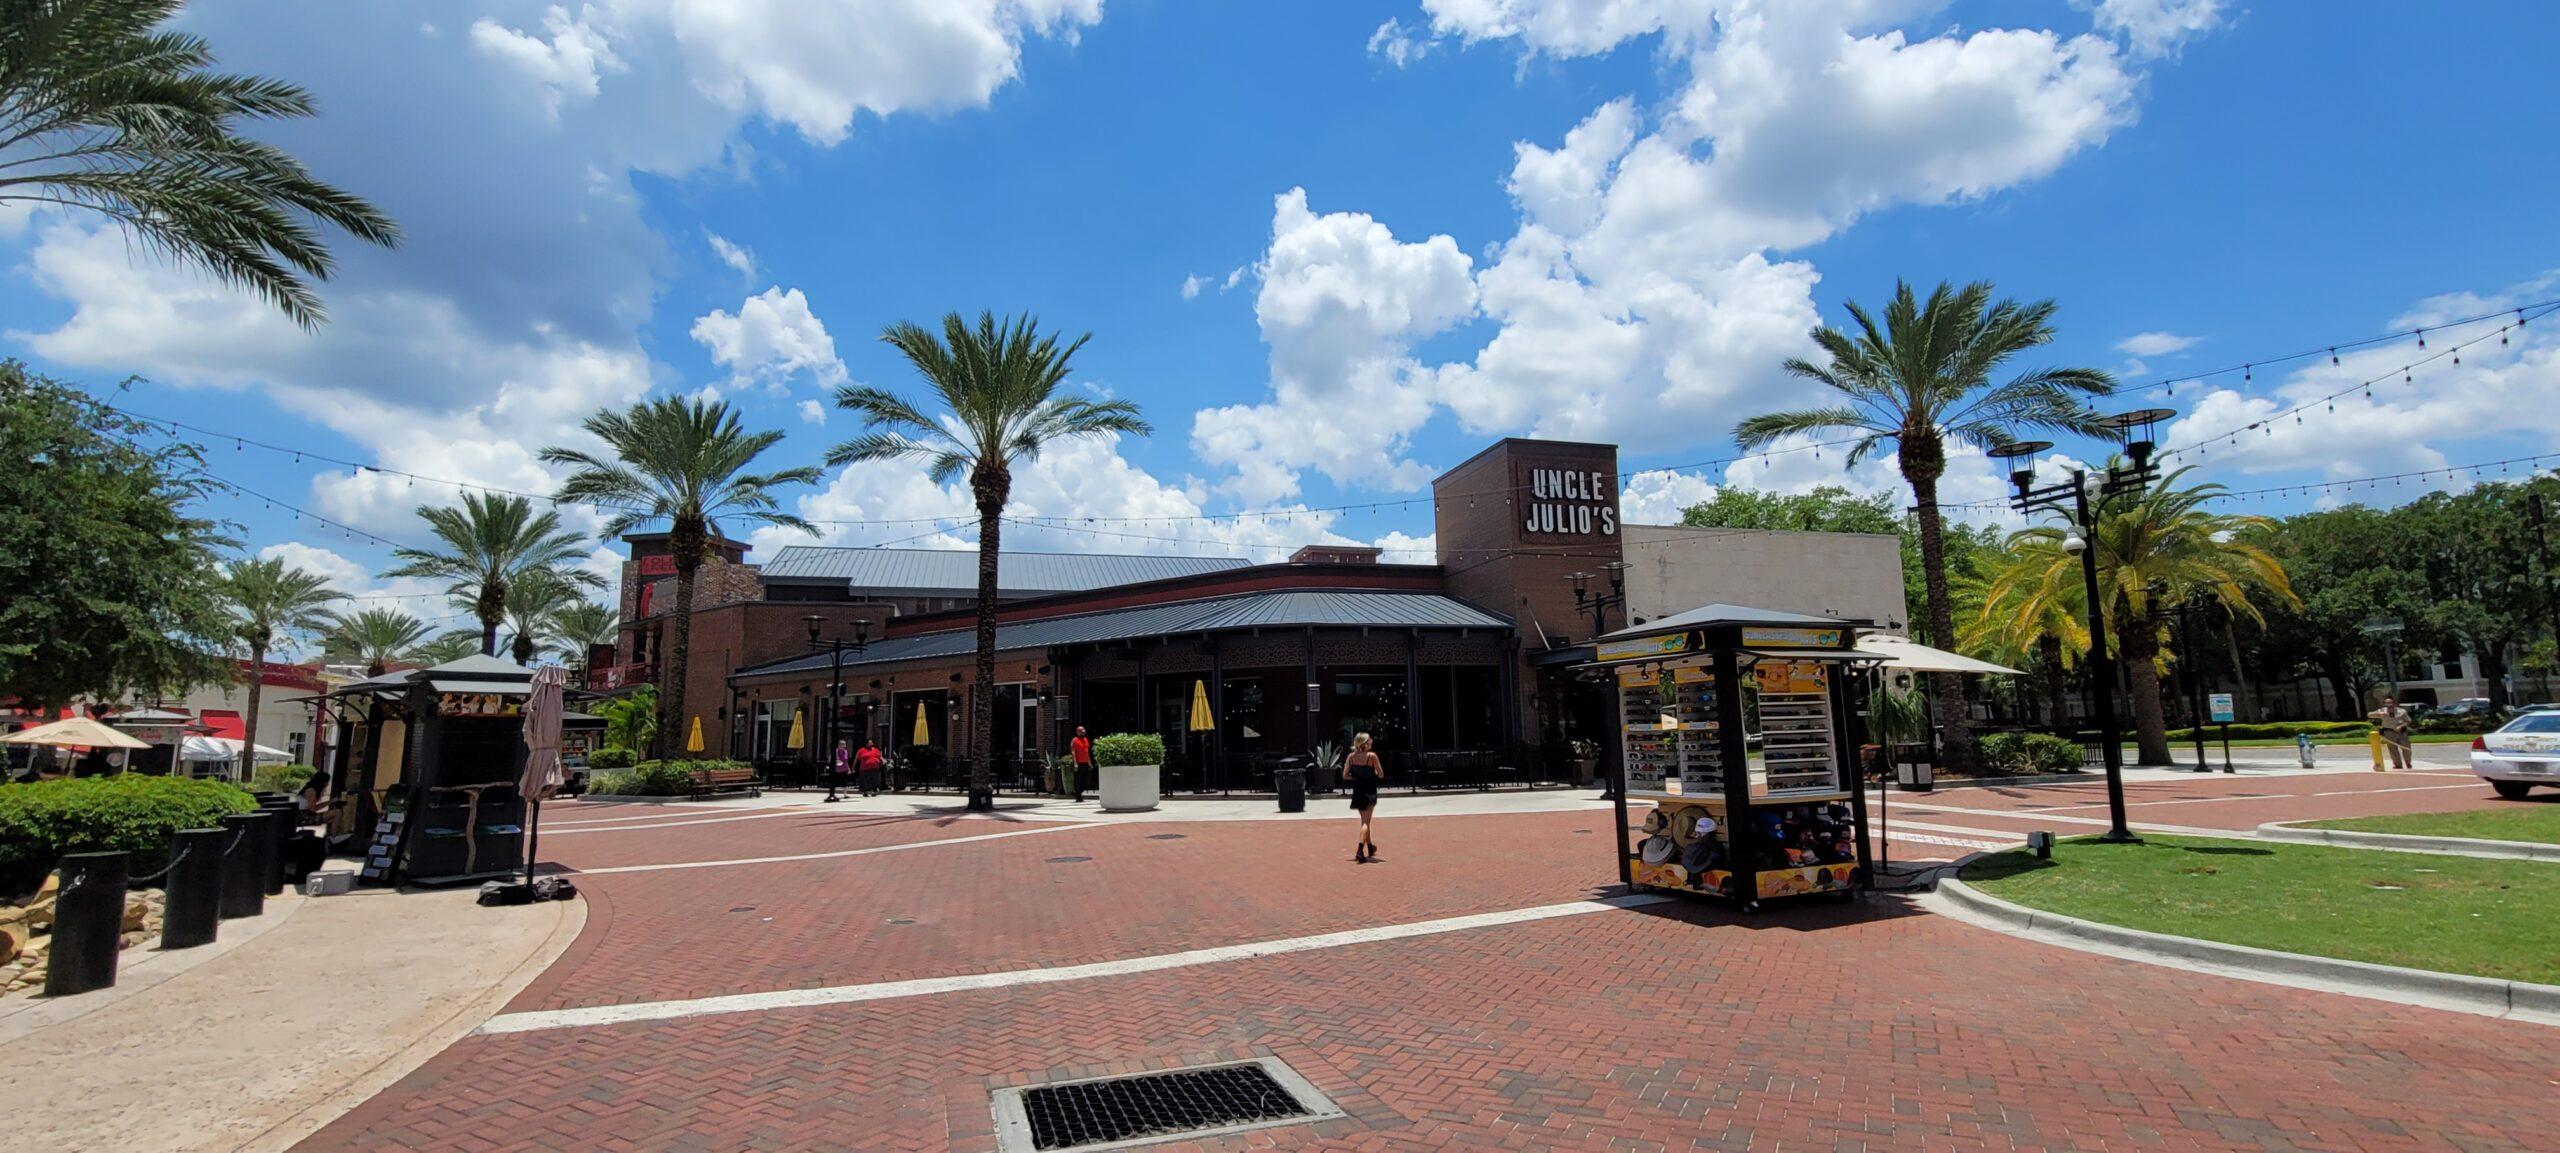 Have a family fun day at ICON Park in Orlando 8